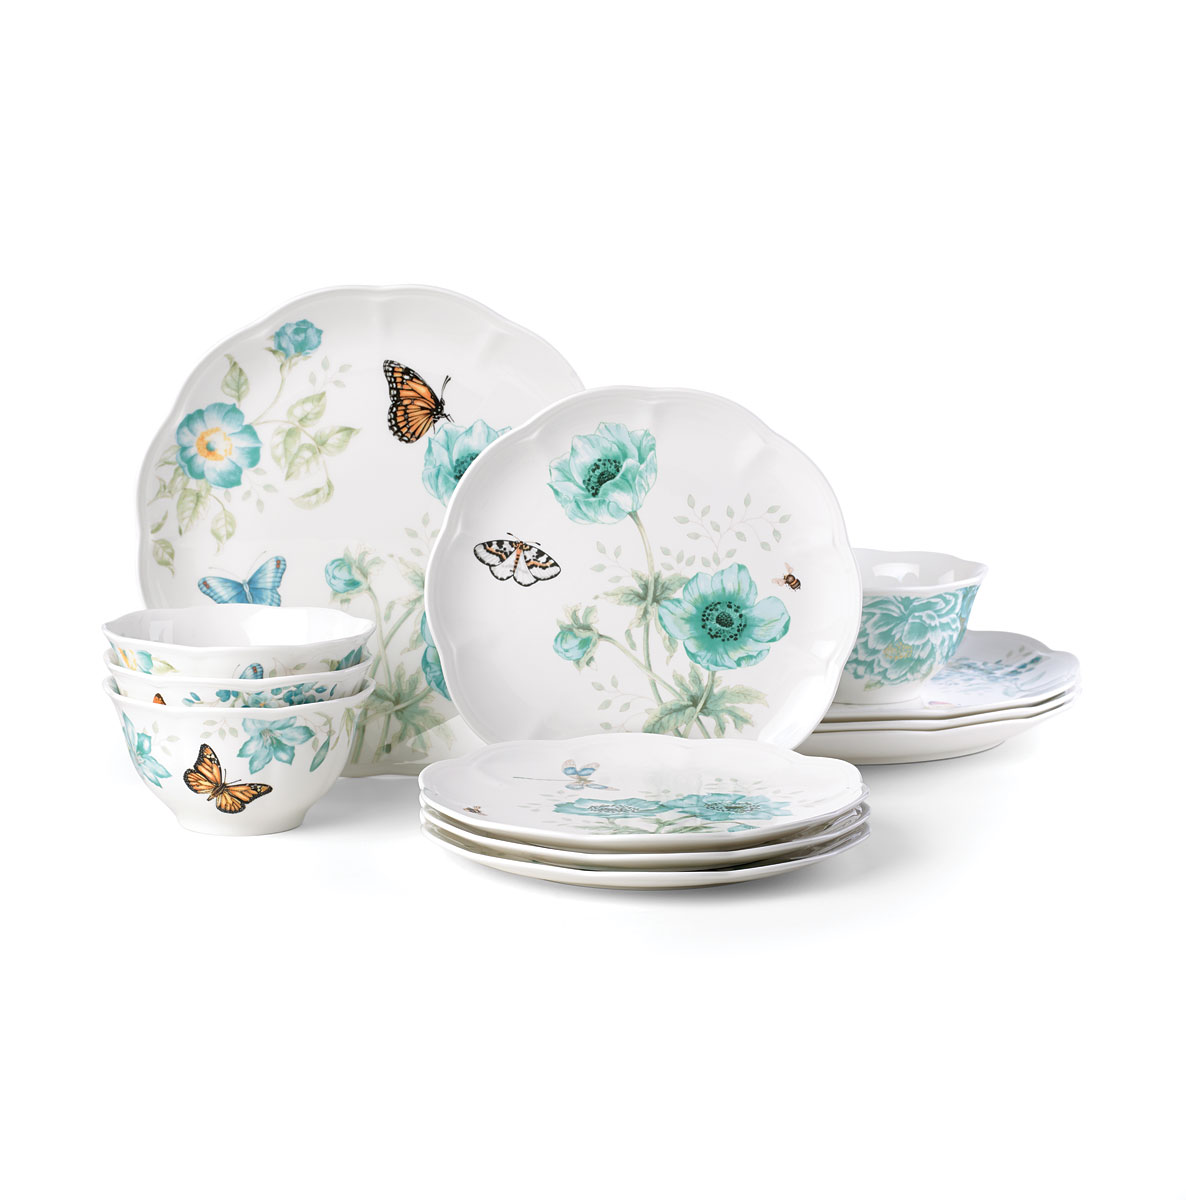 Lenox Butterfly Meadow Turquoise Dinnerware 12 piece set